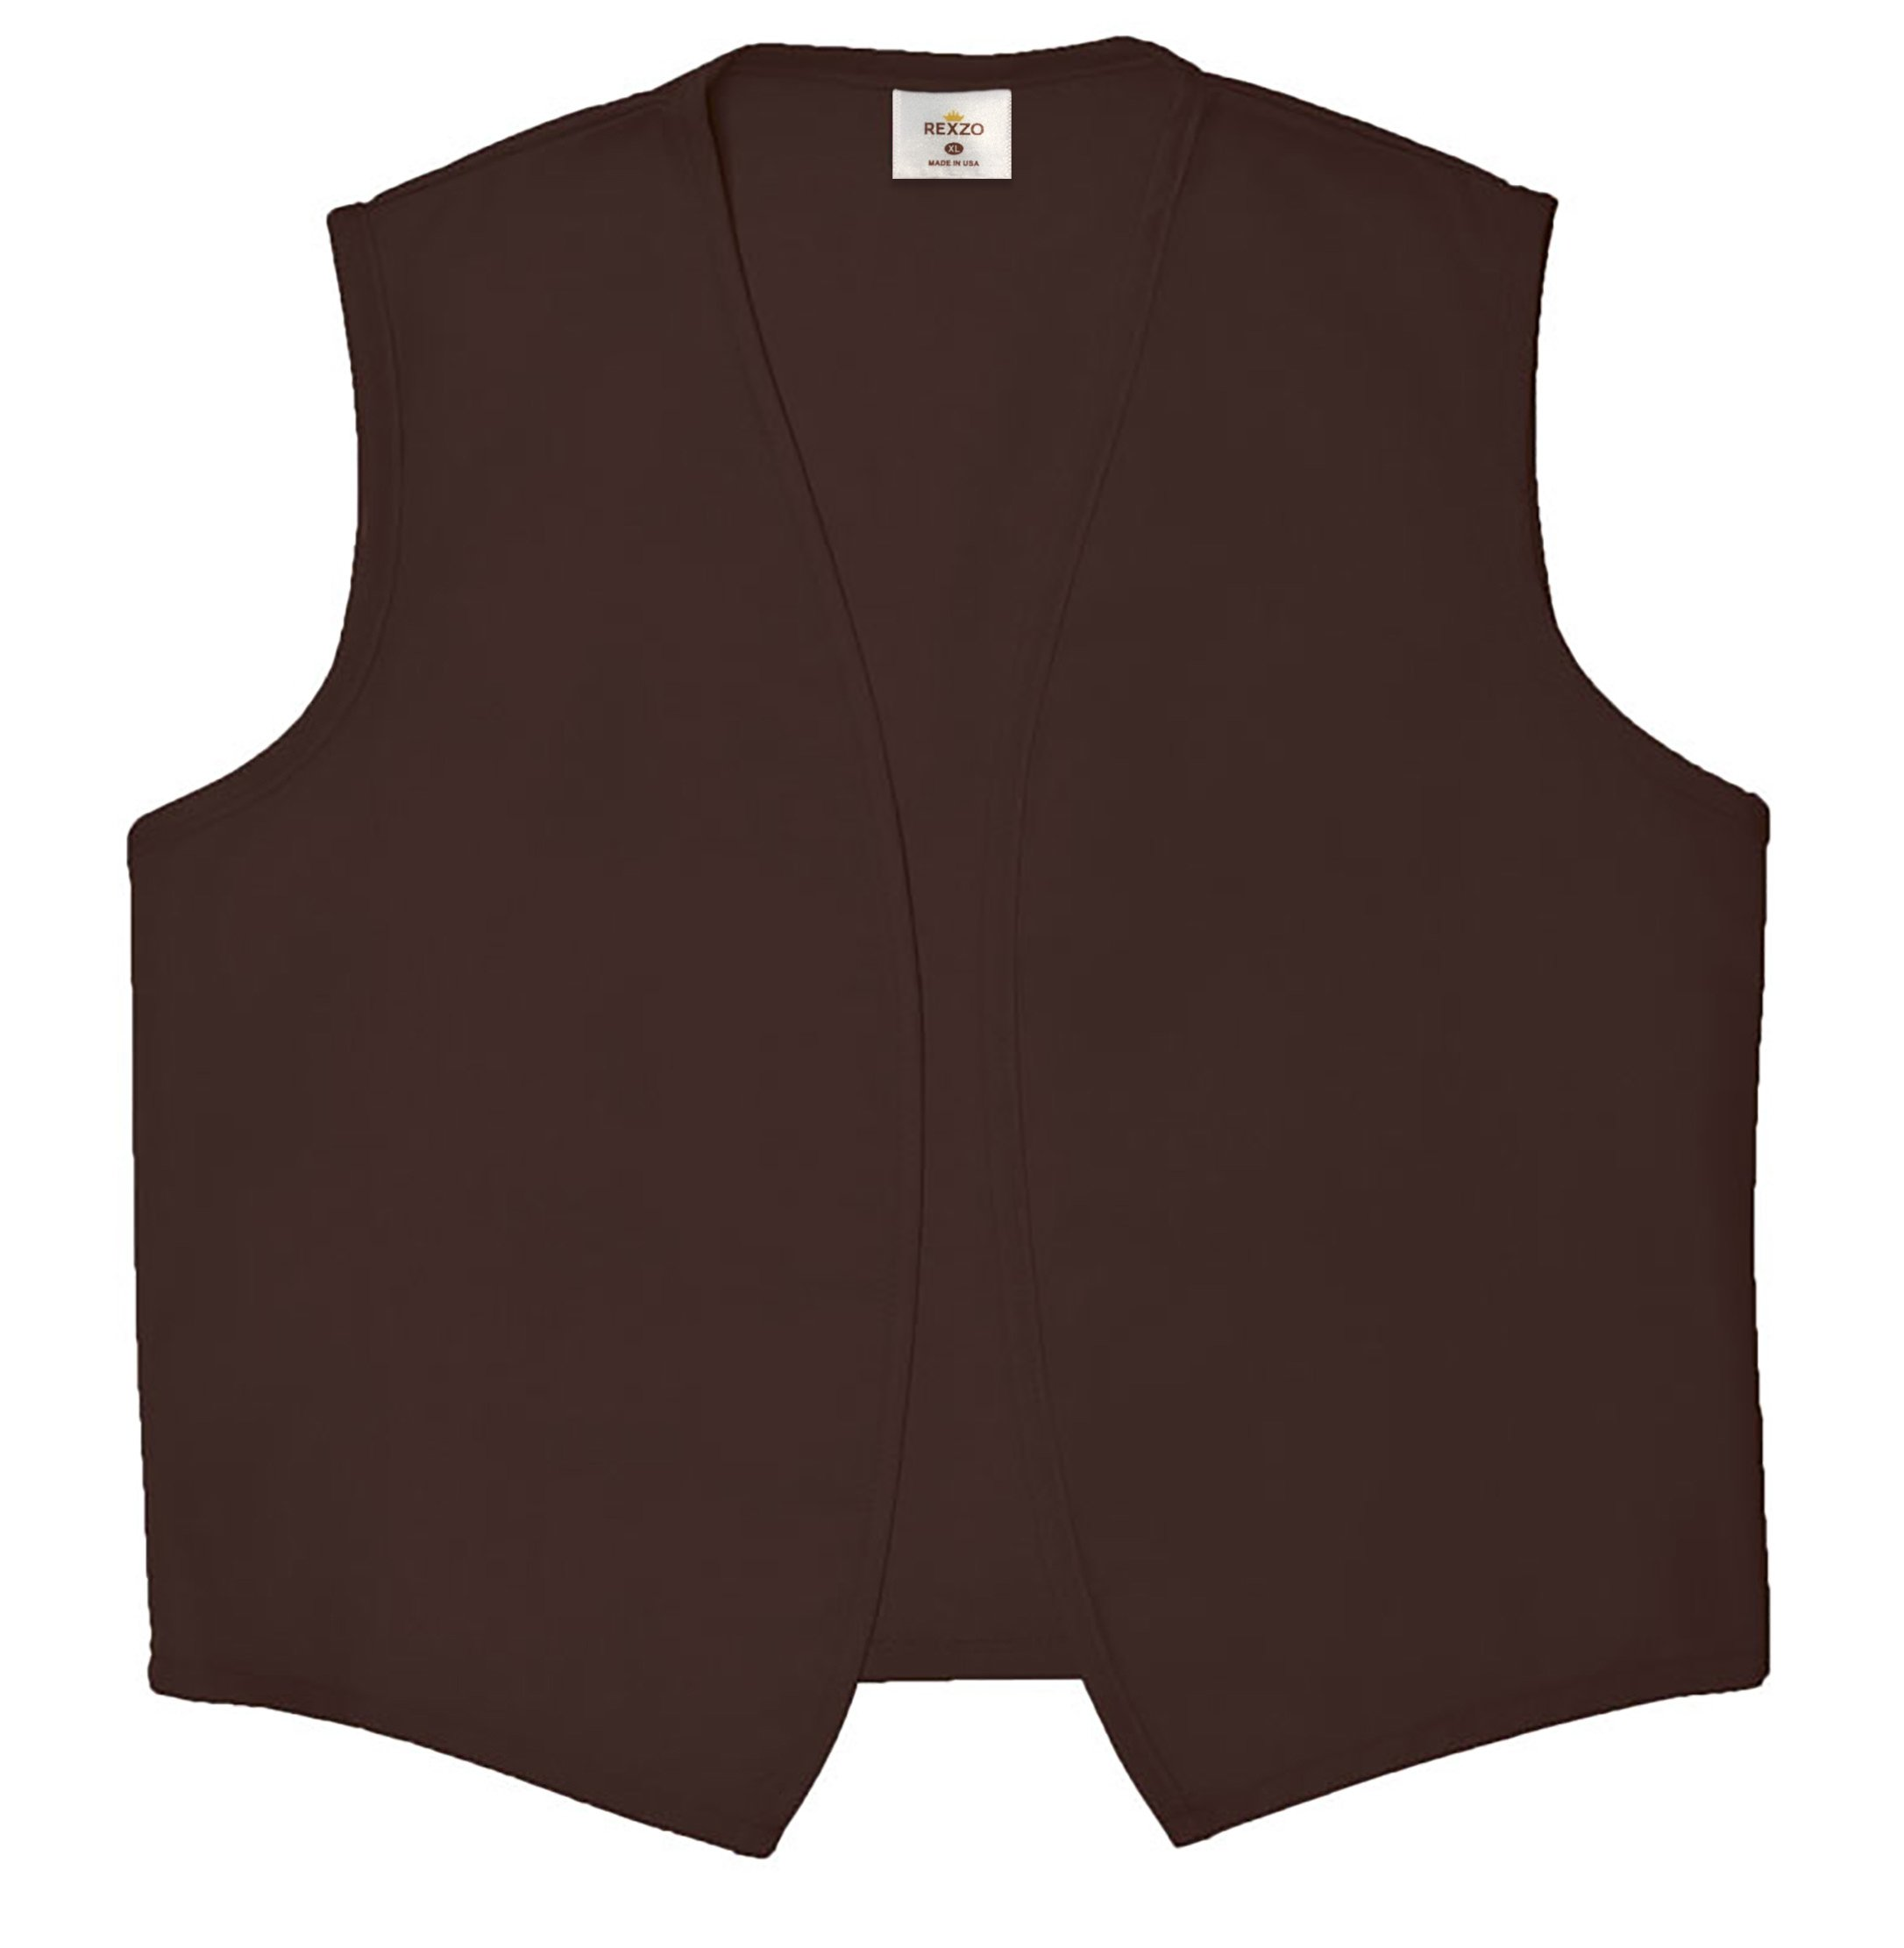 Rexzo Unisex Vest No Pocket No Buttons- Made in The USA - Brown, Large by Rexzo